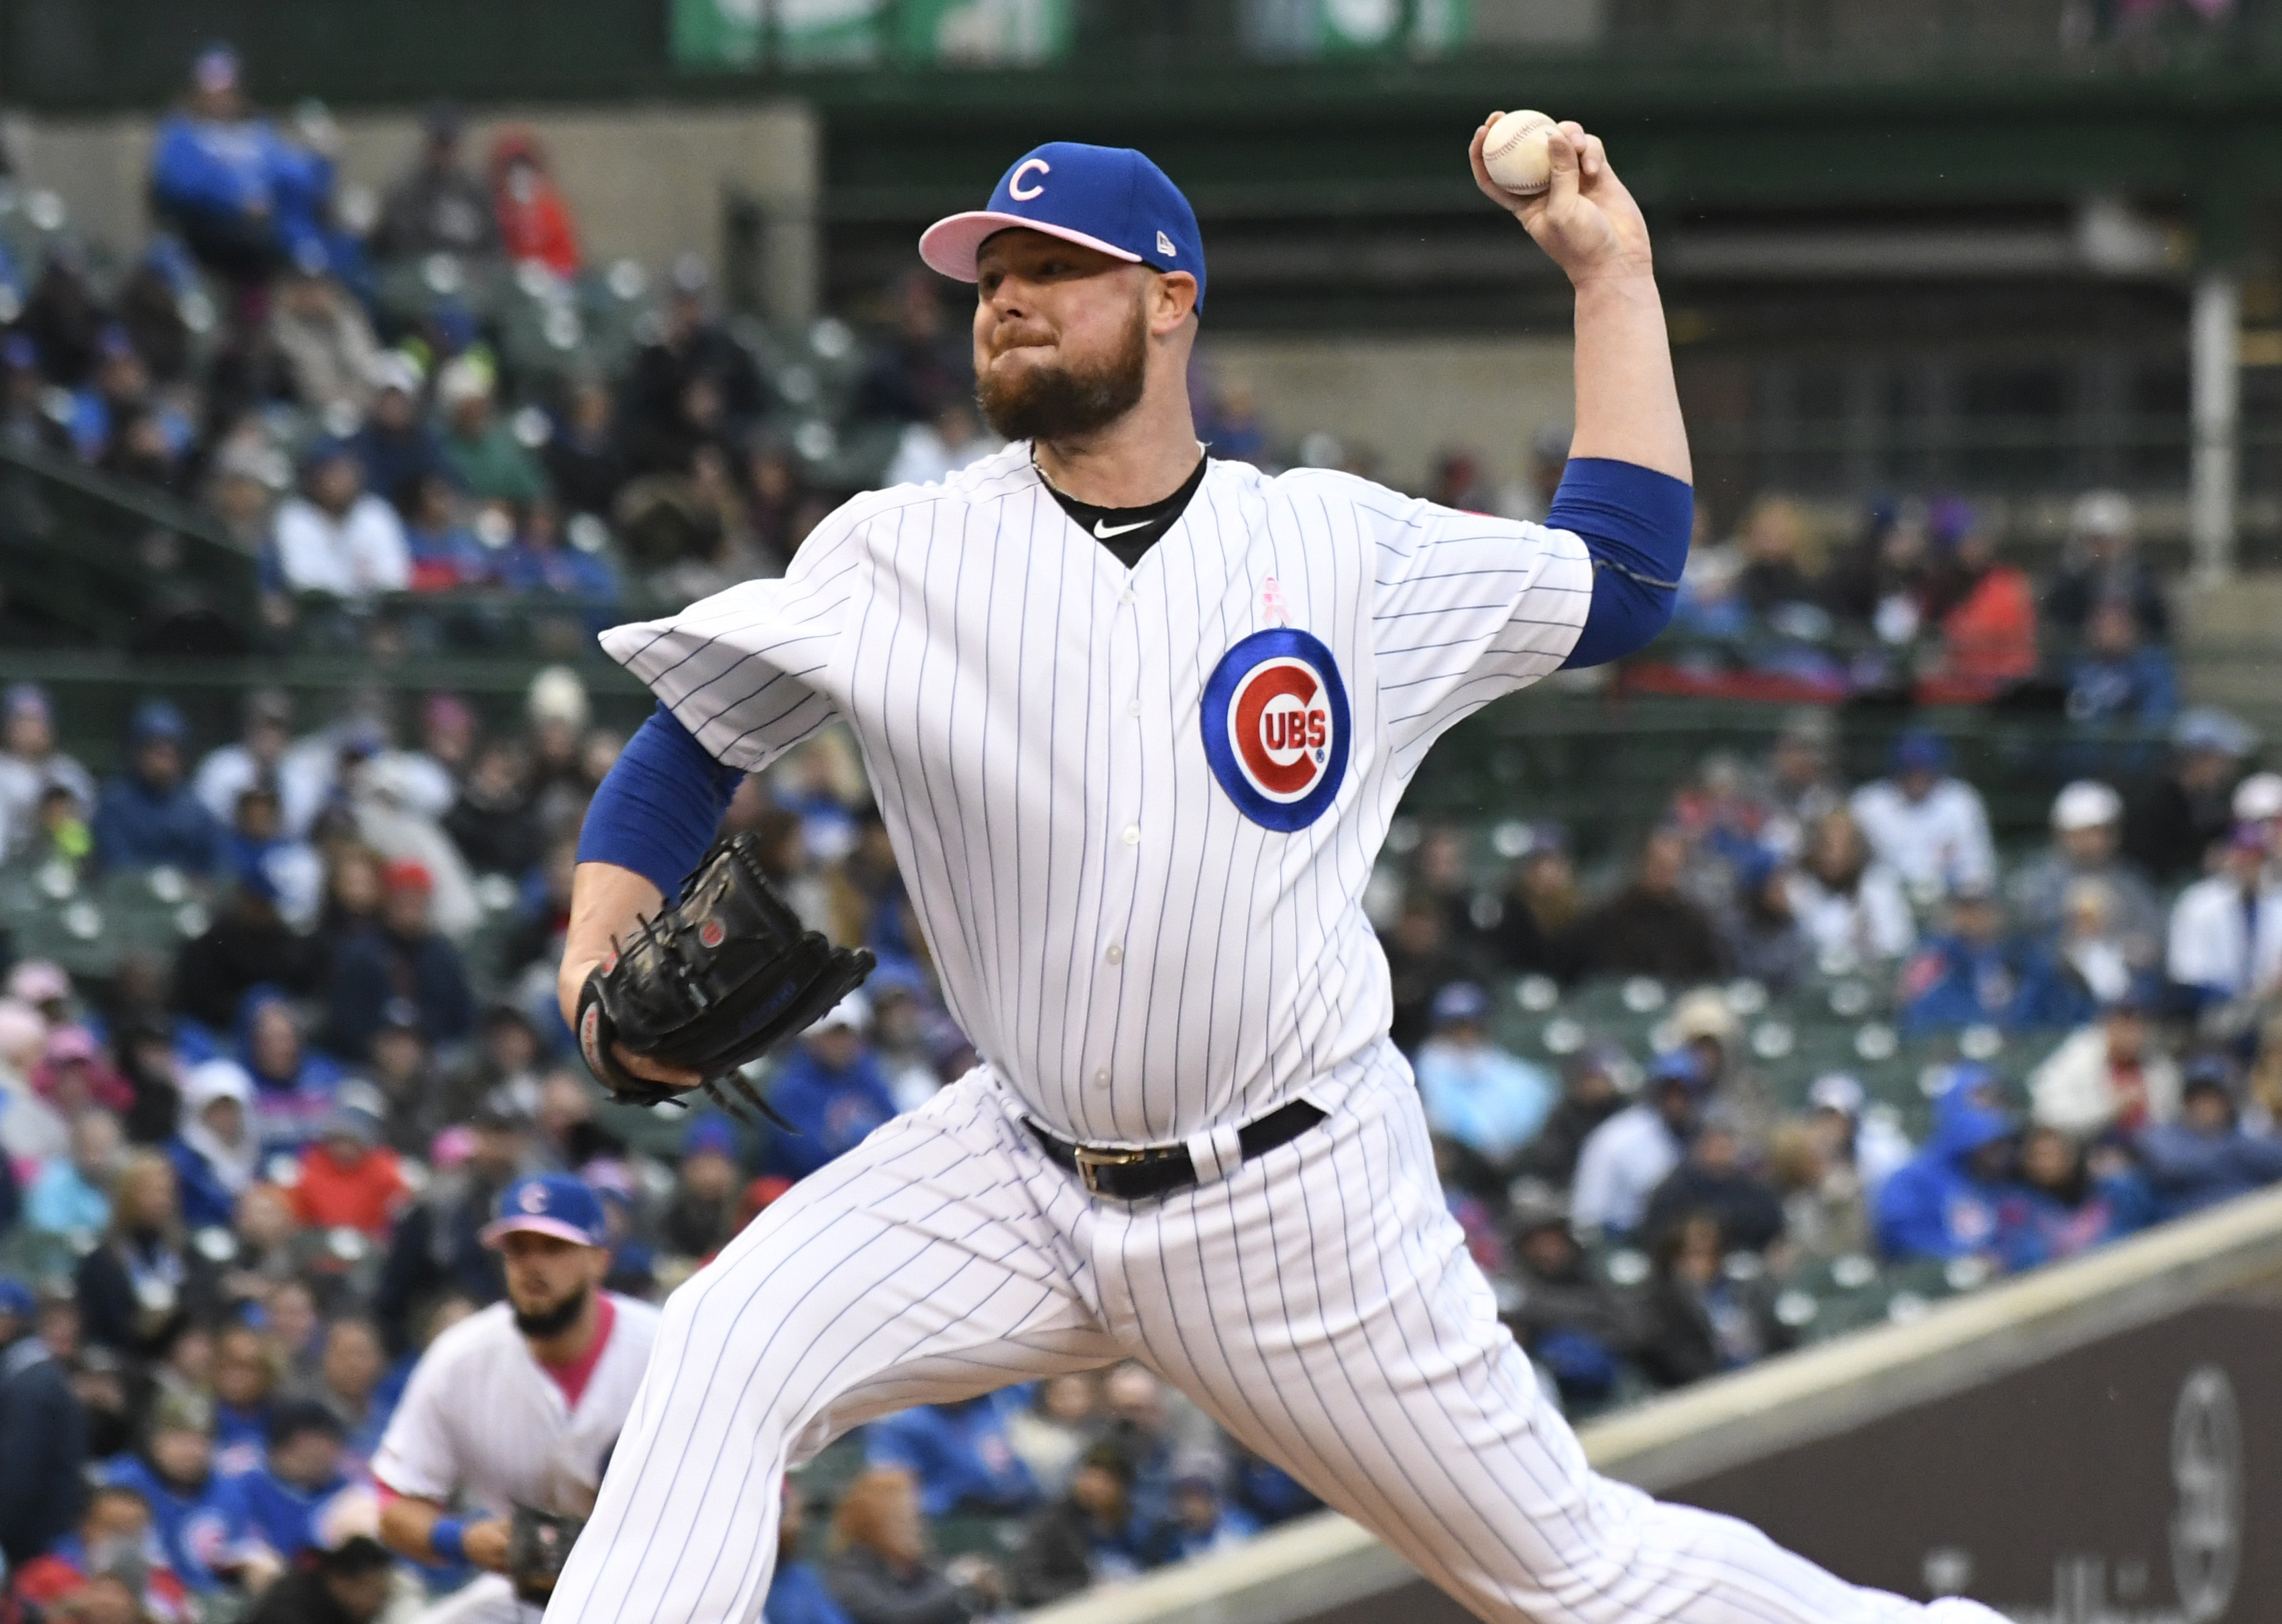 Lester pitches Cubs past Brewers 4-1 for series win